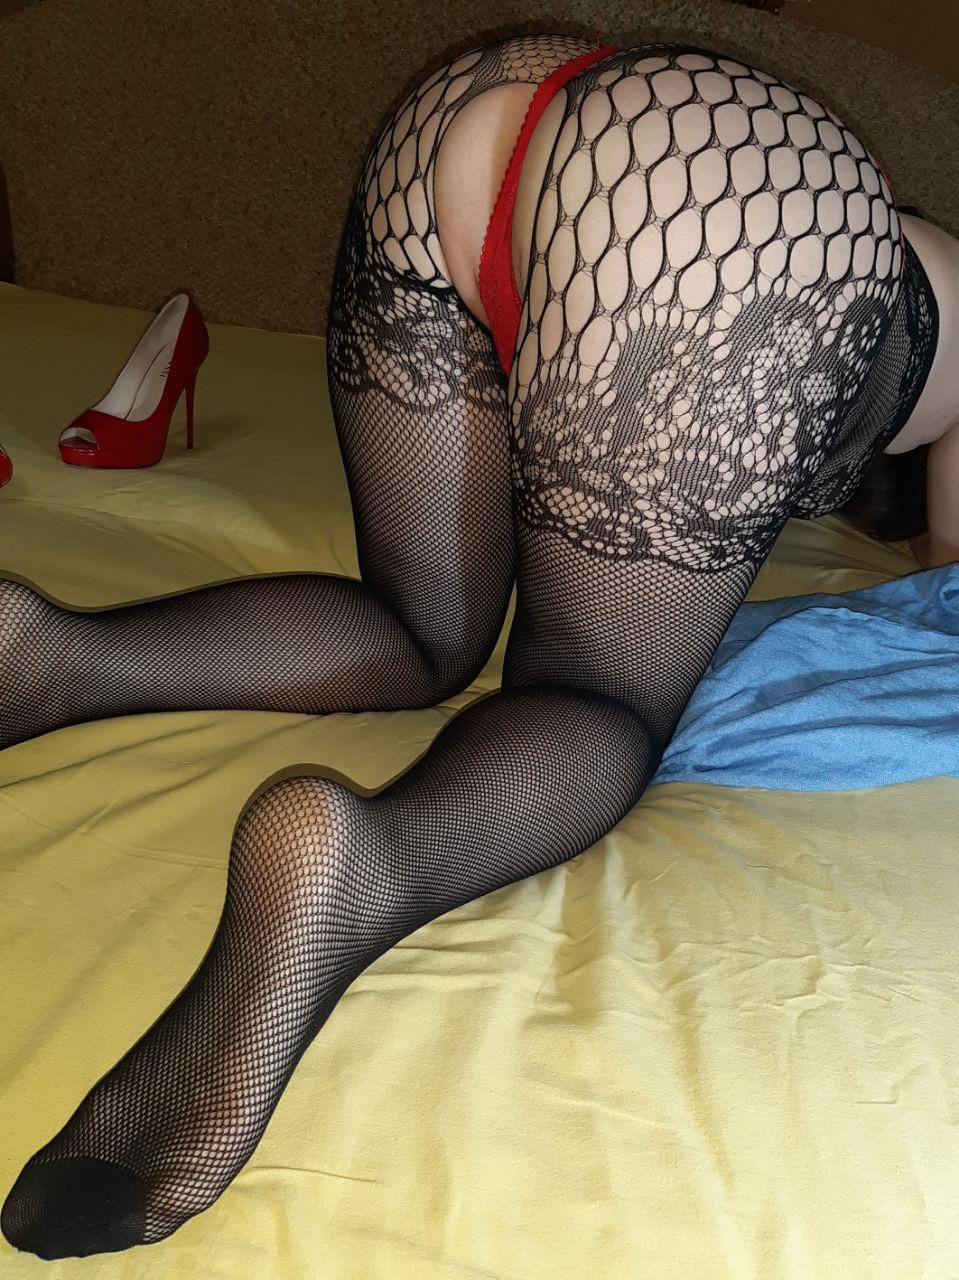 Non nude Crazy Milfa mature Chaturbate livesex cam model big ass in lace fishnet pantyhose and s ...